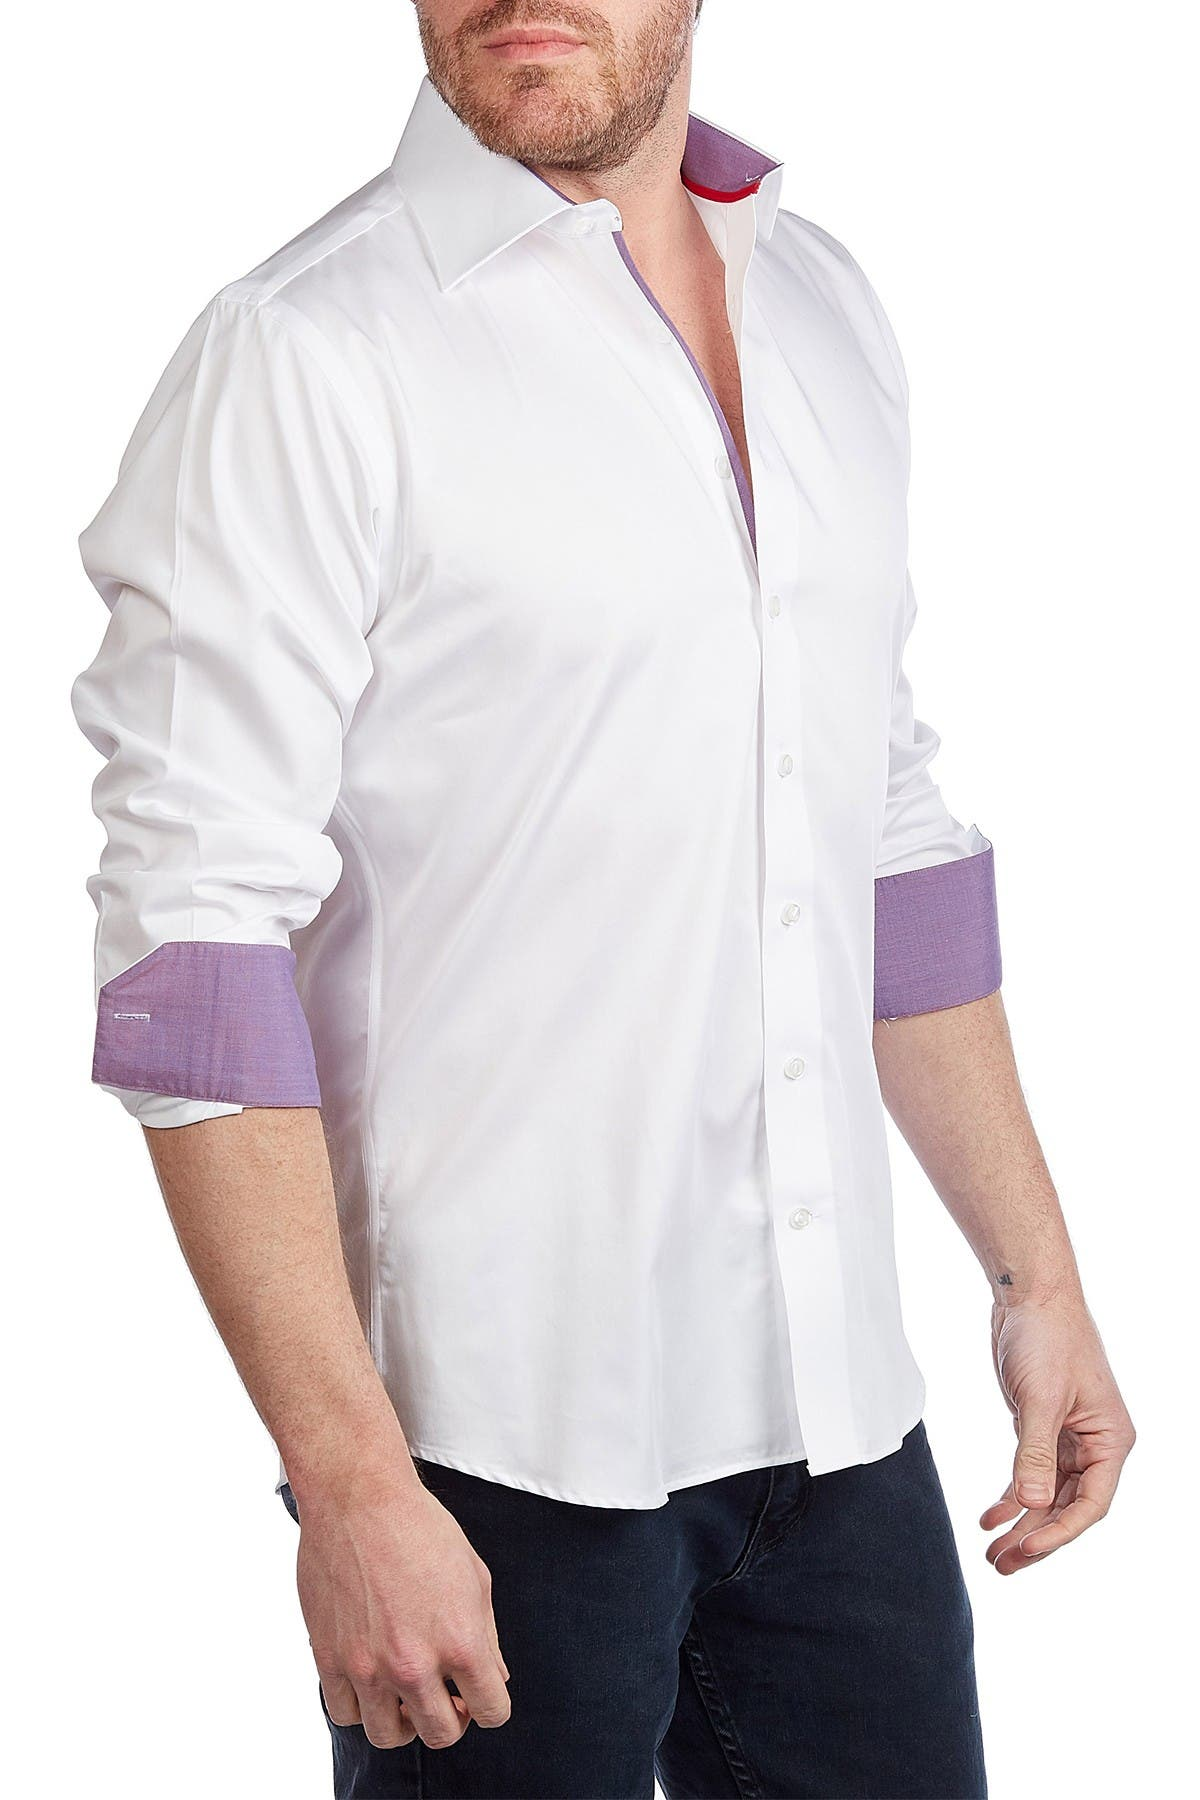 Image of Levinas Solid Contemporary Fit Shirt